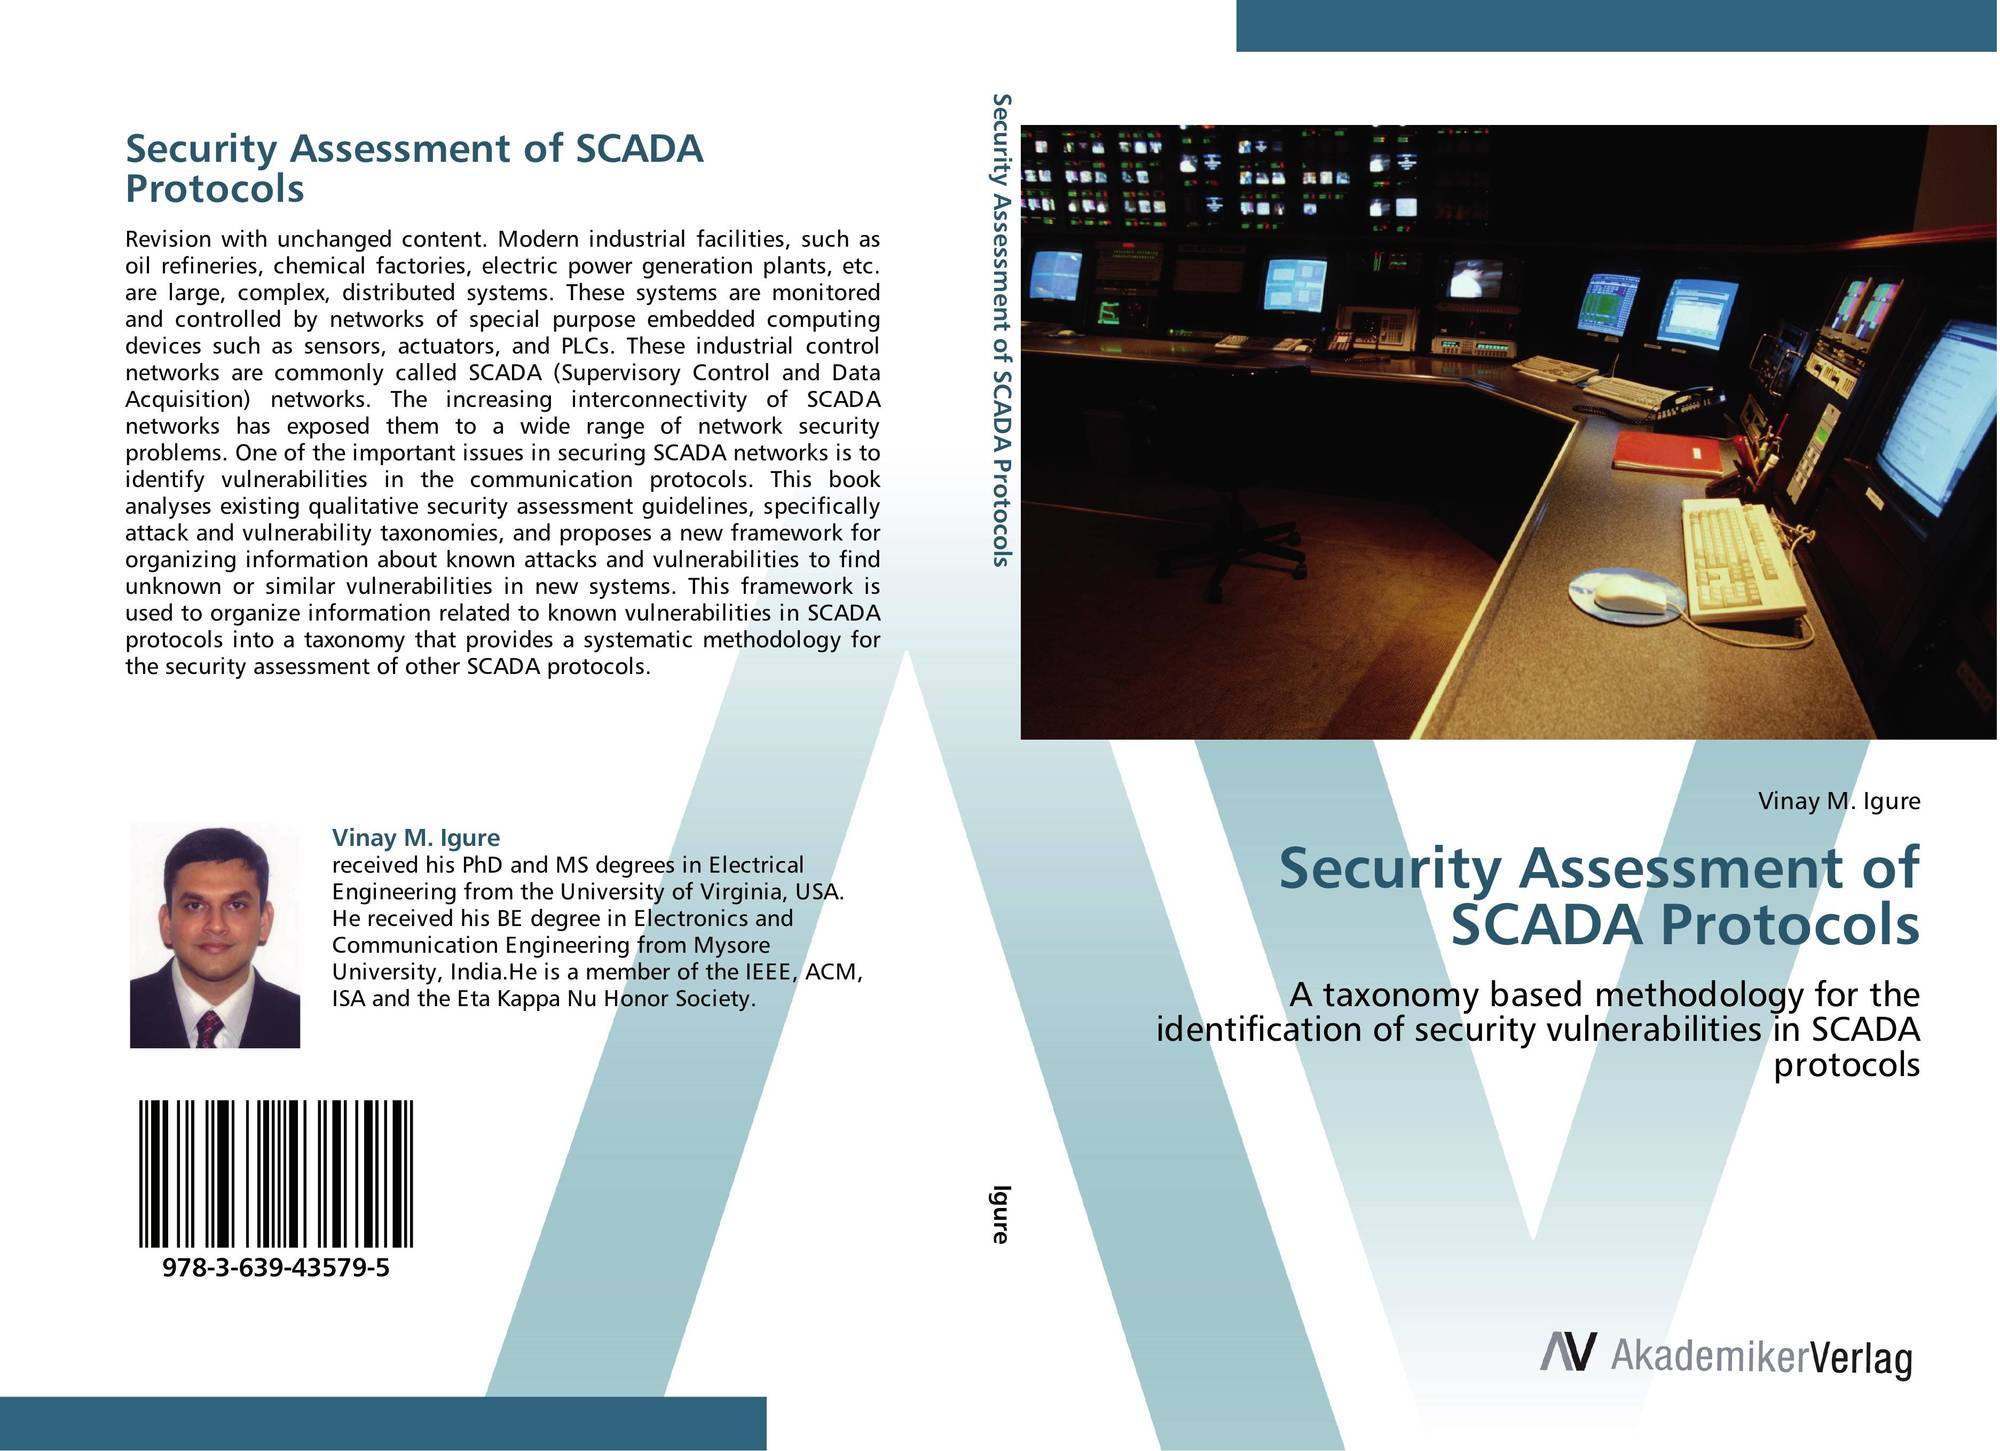 scada vulnerabilities and electric power industry